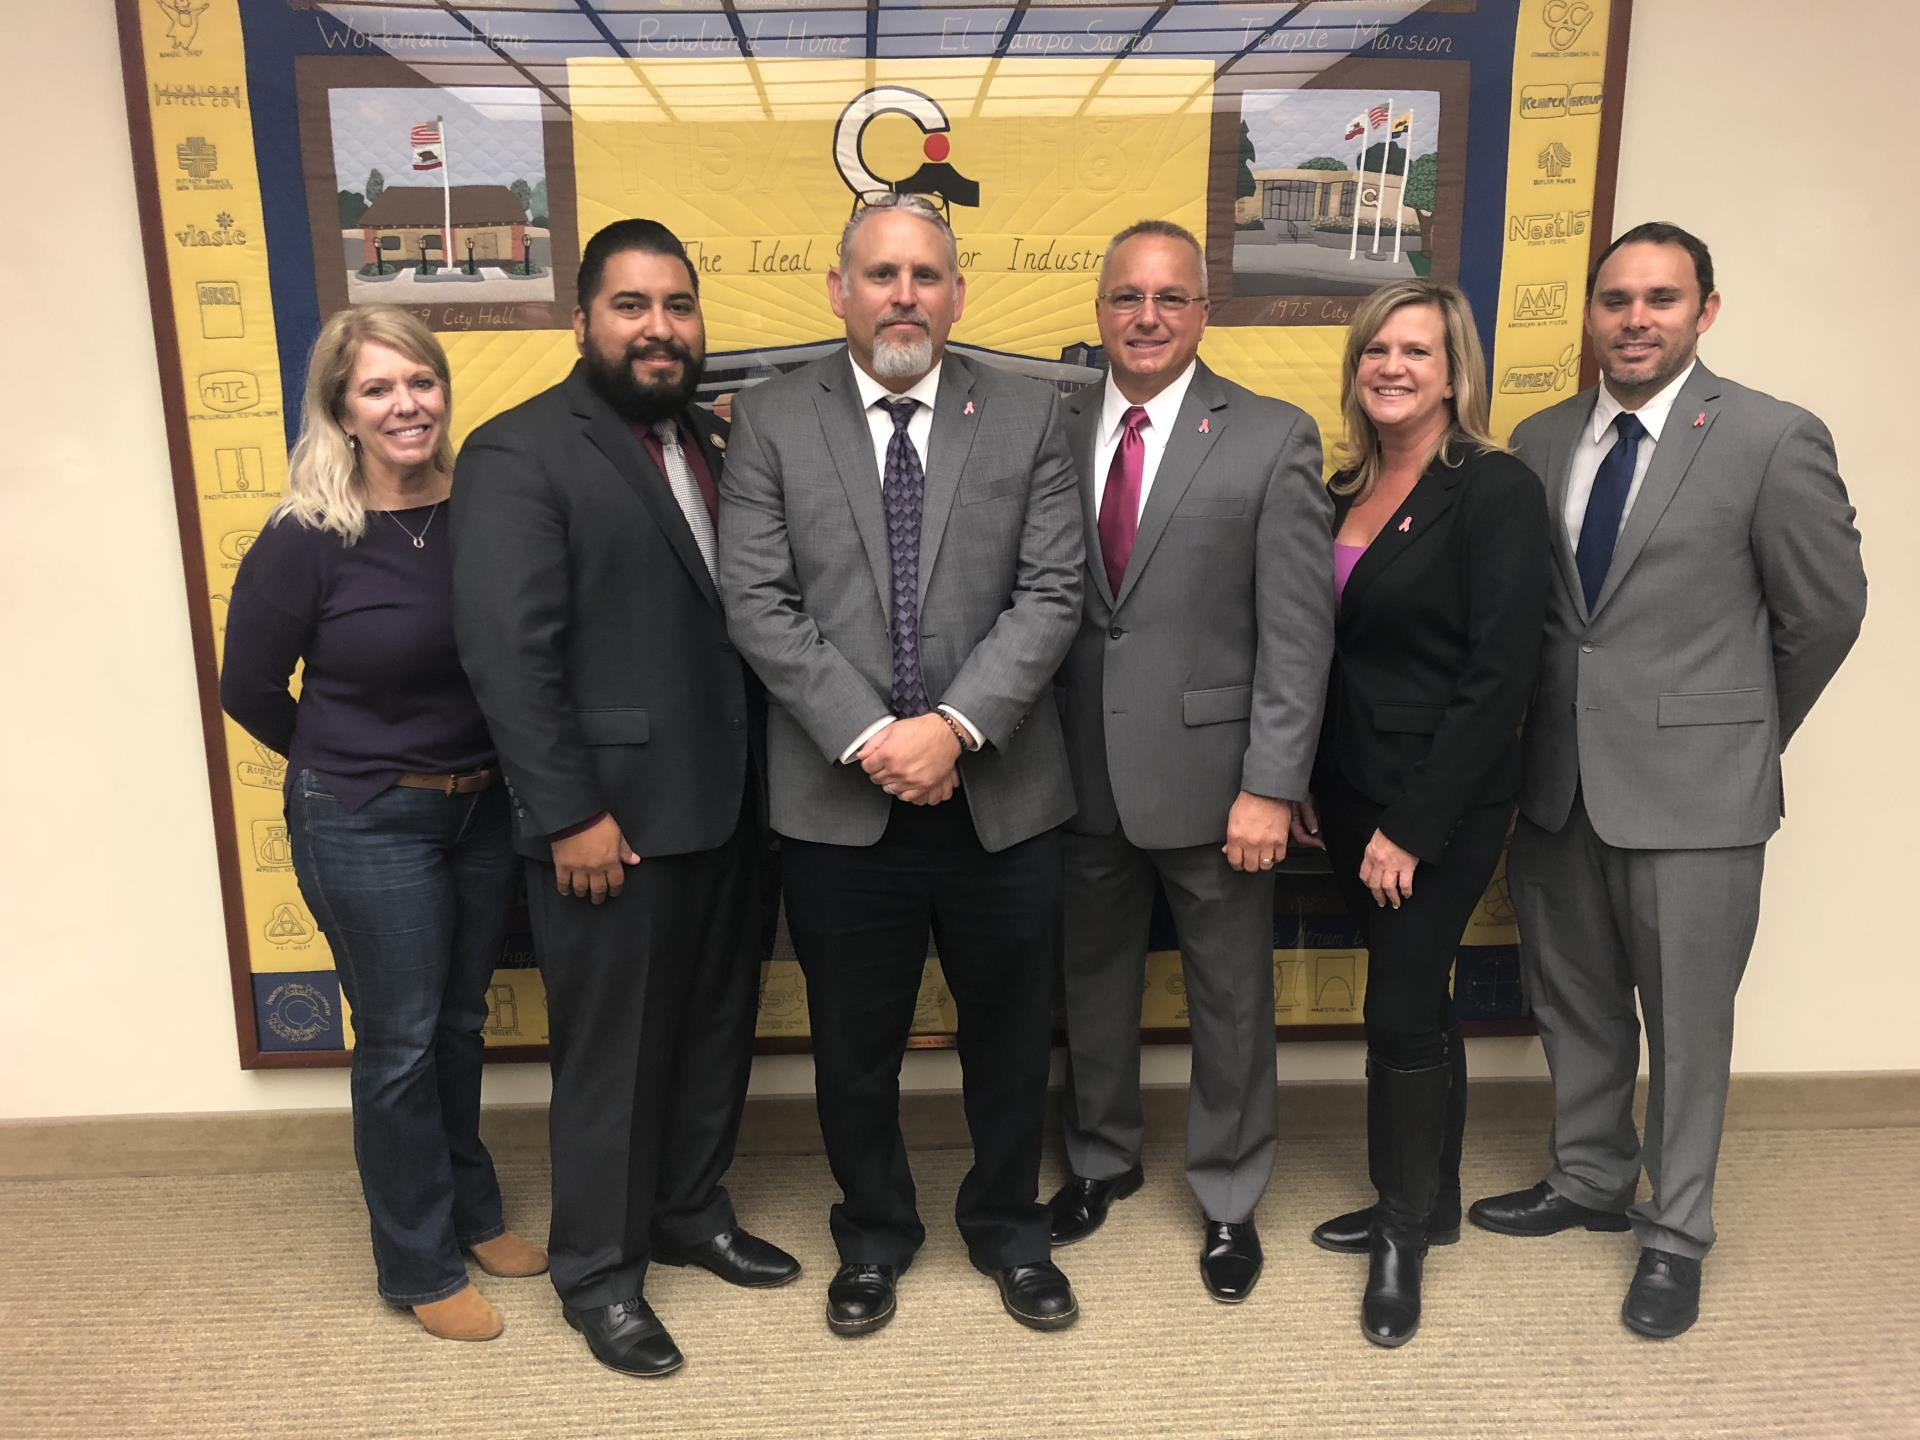 INDUSTRY CITY COUNCIL APPOINTS CITY MANAGER